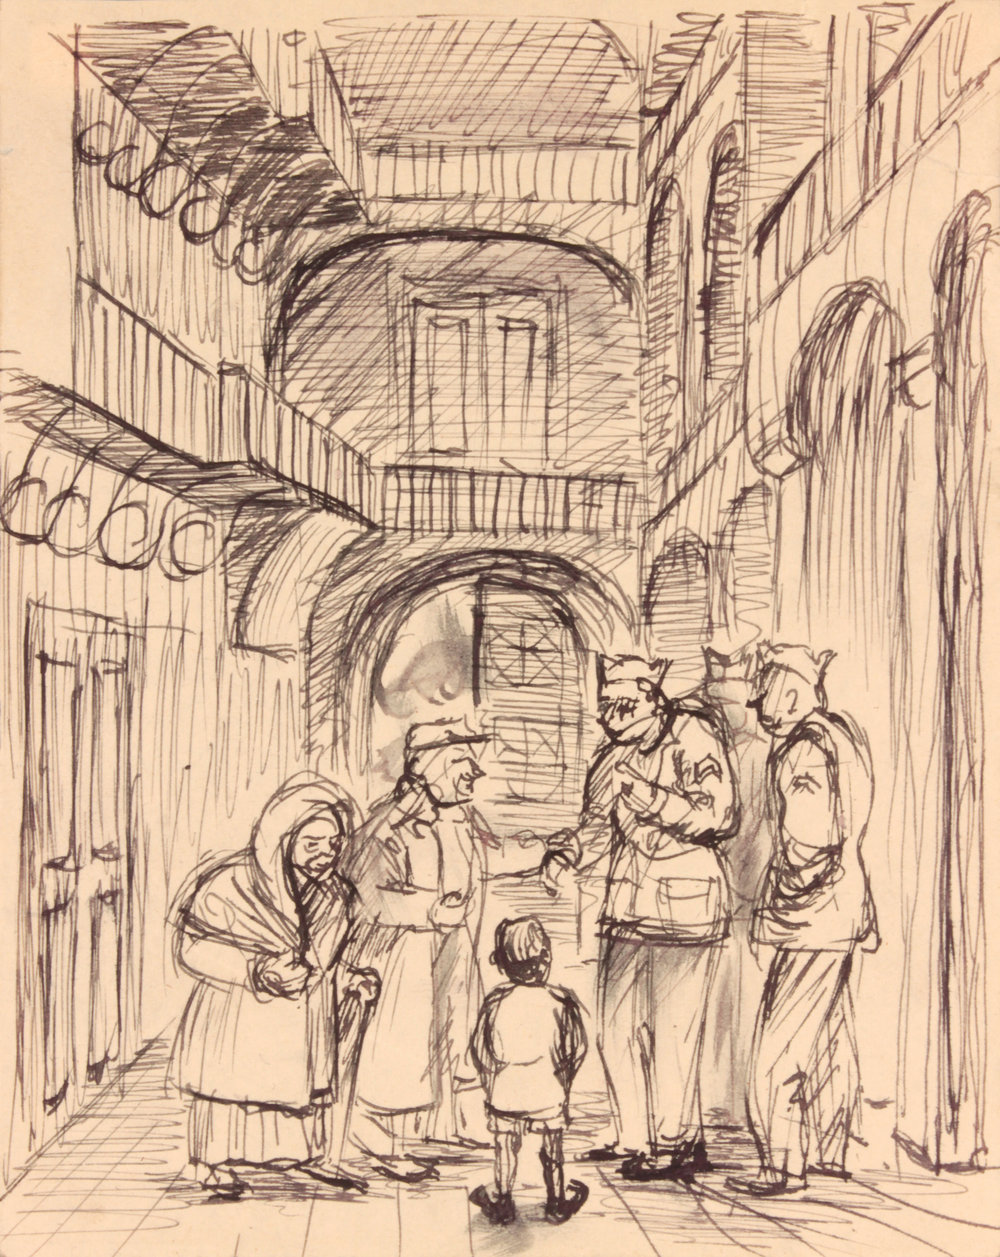 96. 1944 Winter, Caserta, Italy VI (Beggars and Soldiers), Pen and Ink on Paper, 6.125x4.8125, PPS 1522.JPG